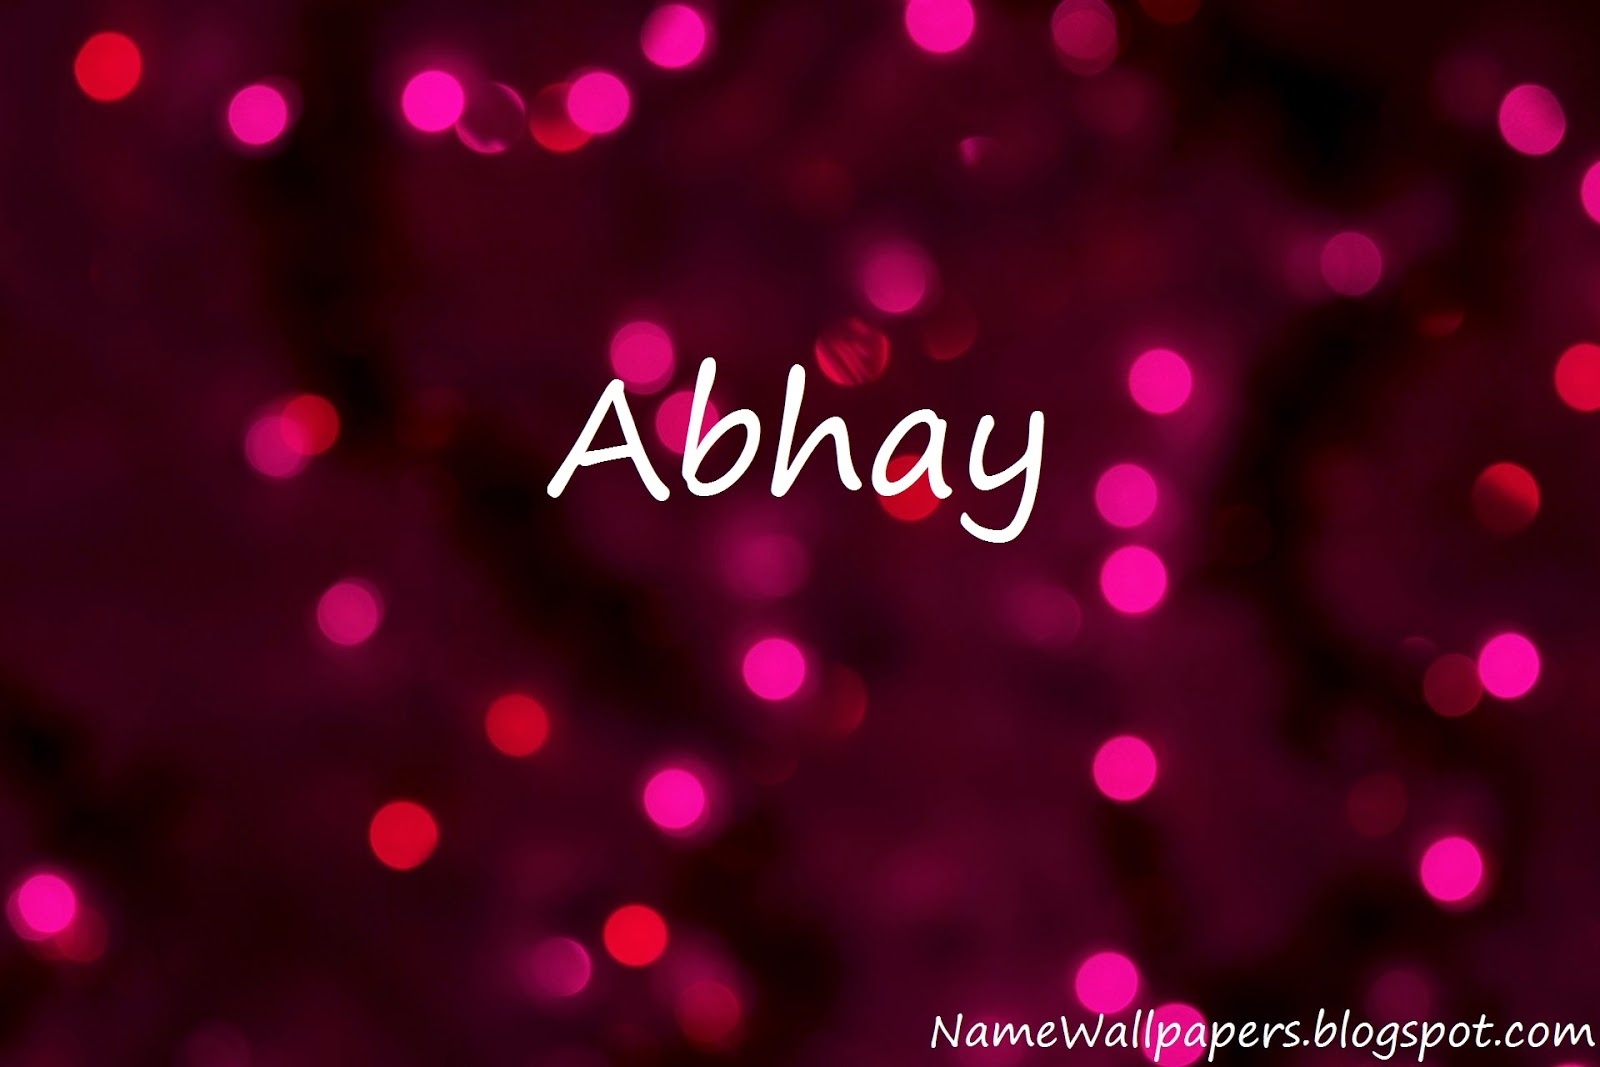 Nike Animated Wallpaper Download Abhay Name Wallpaper Gallery